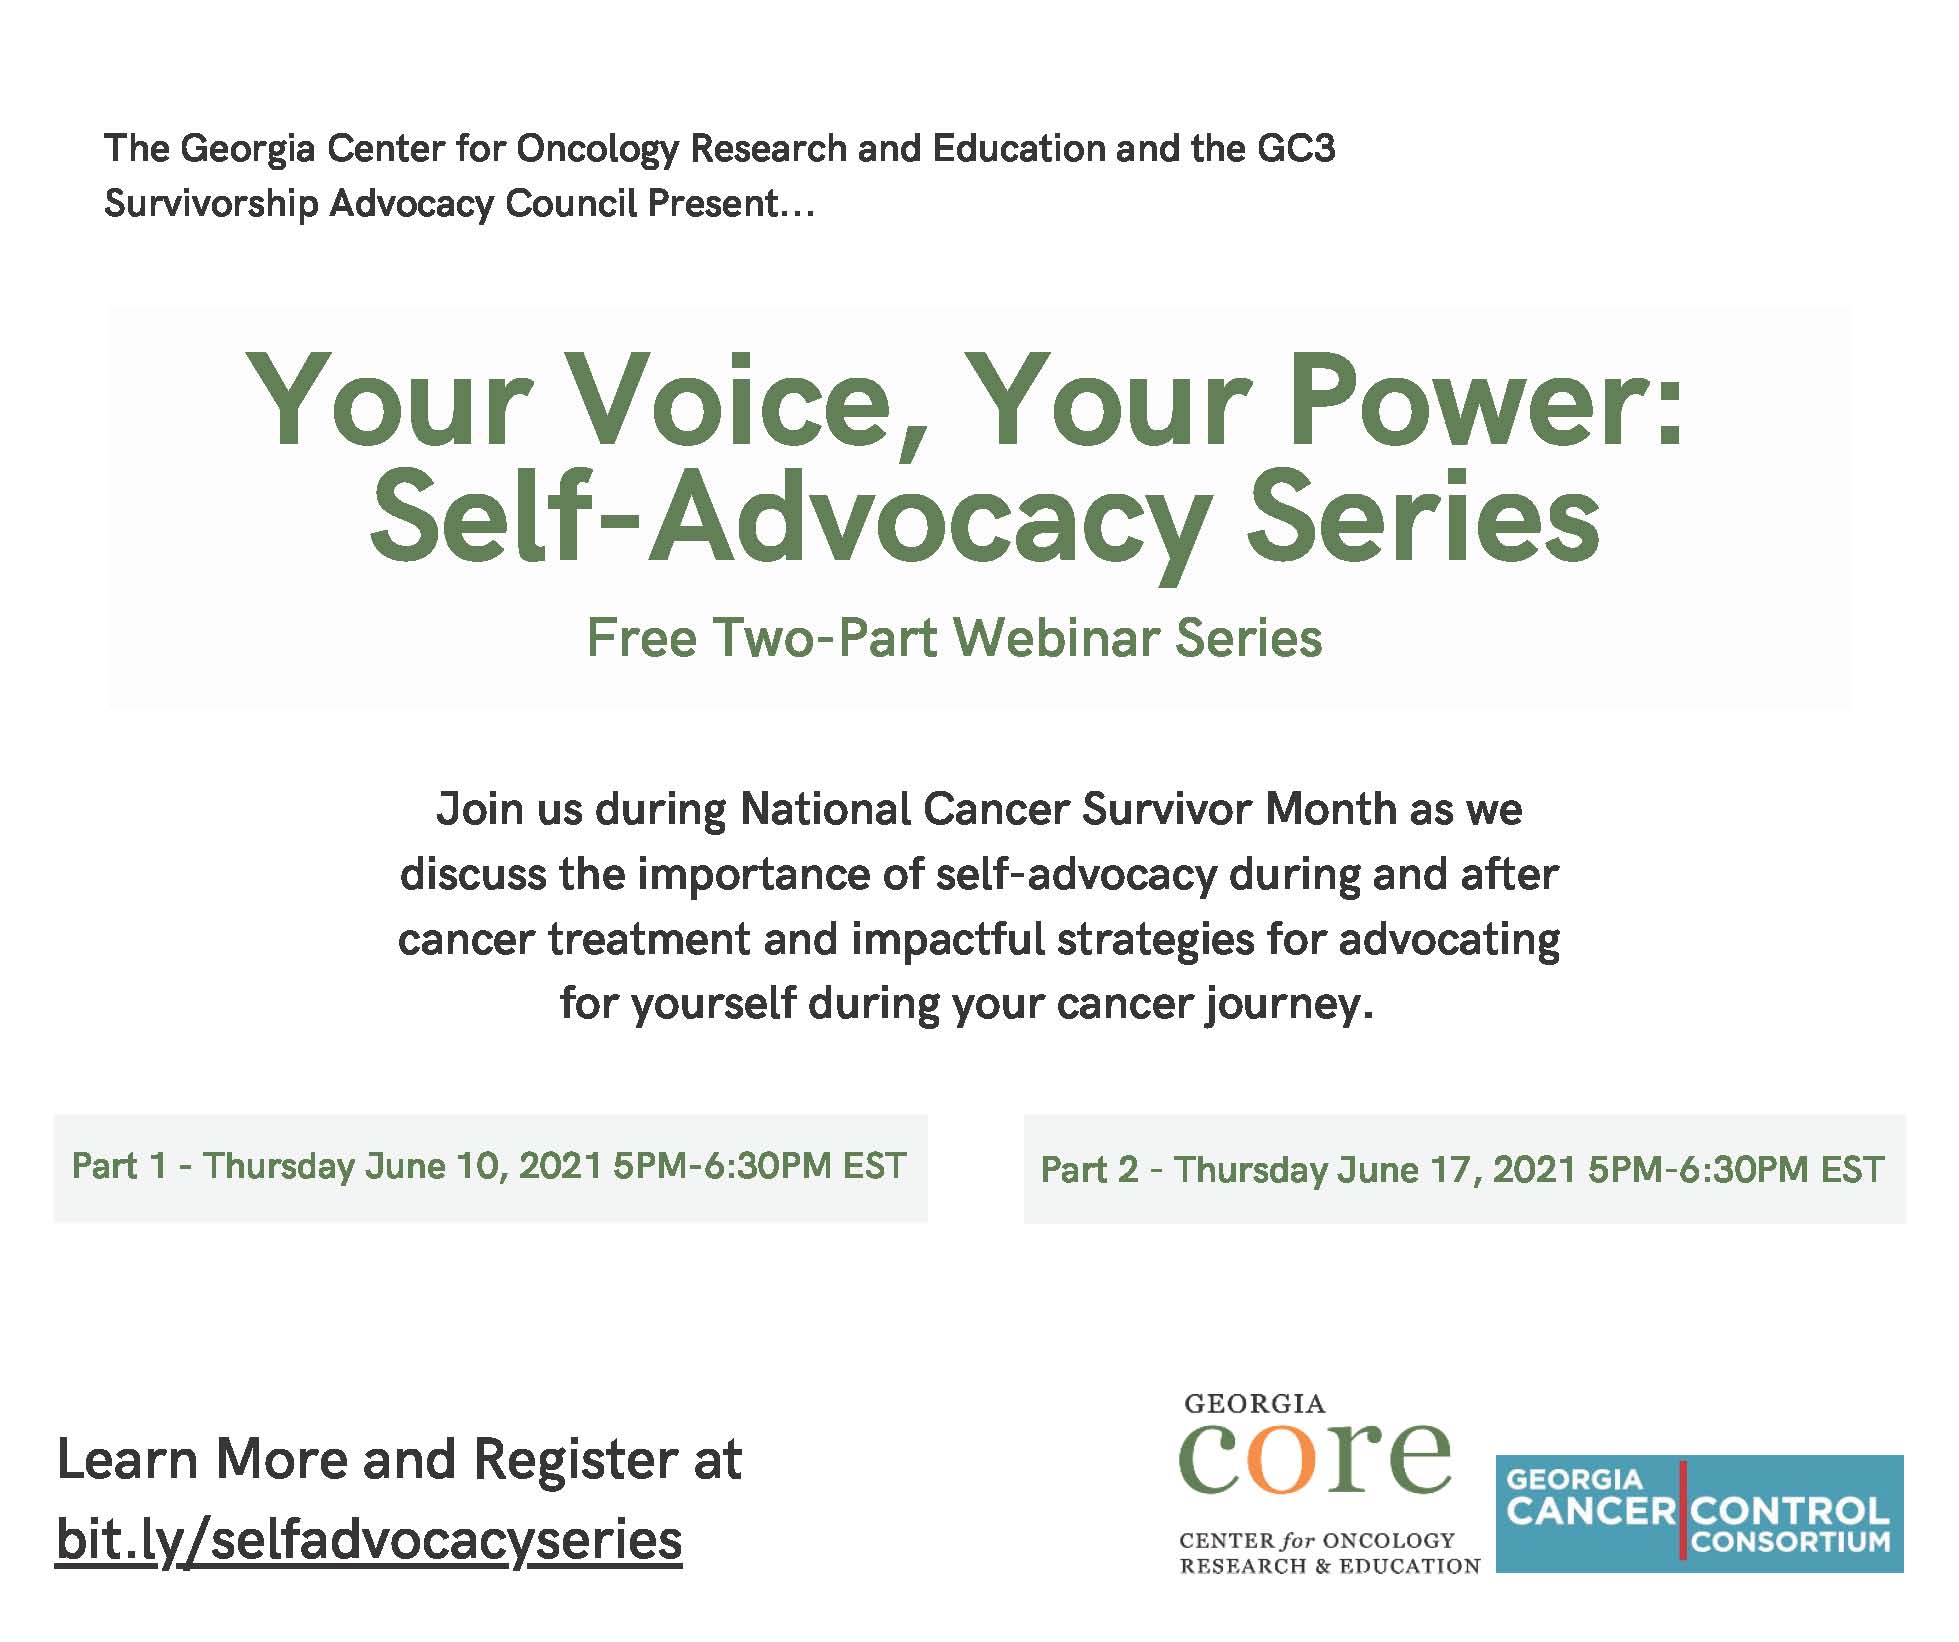 Your Voice, Your Power:  Self-Advocacy Series - Part 2